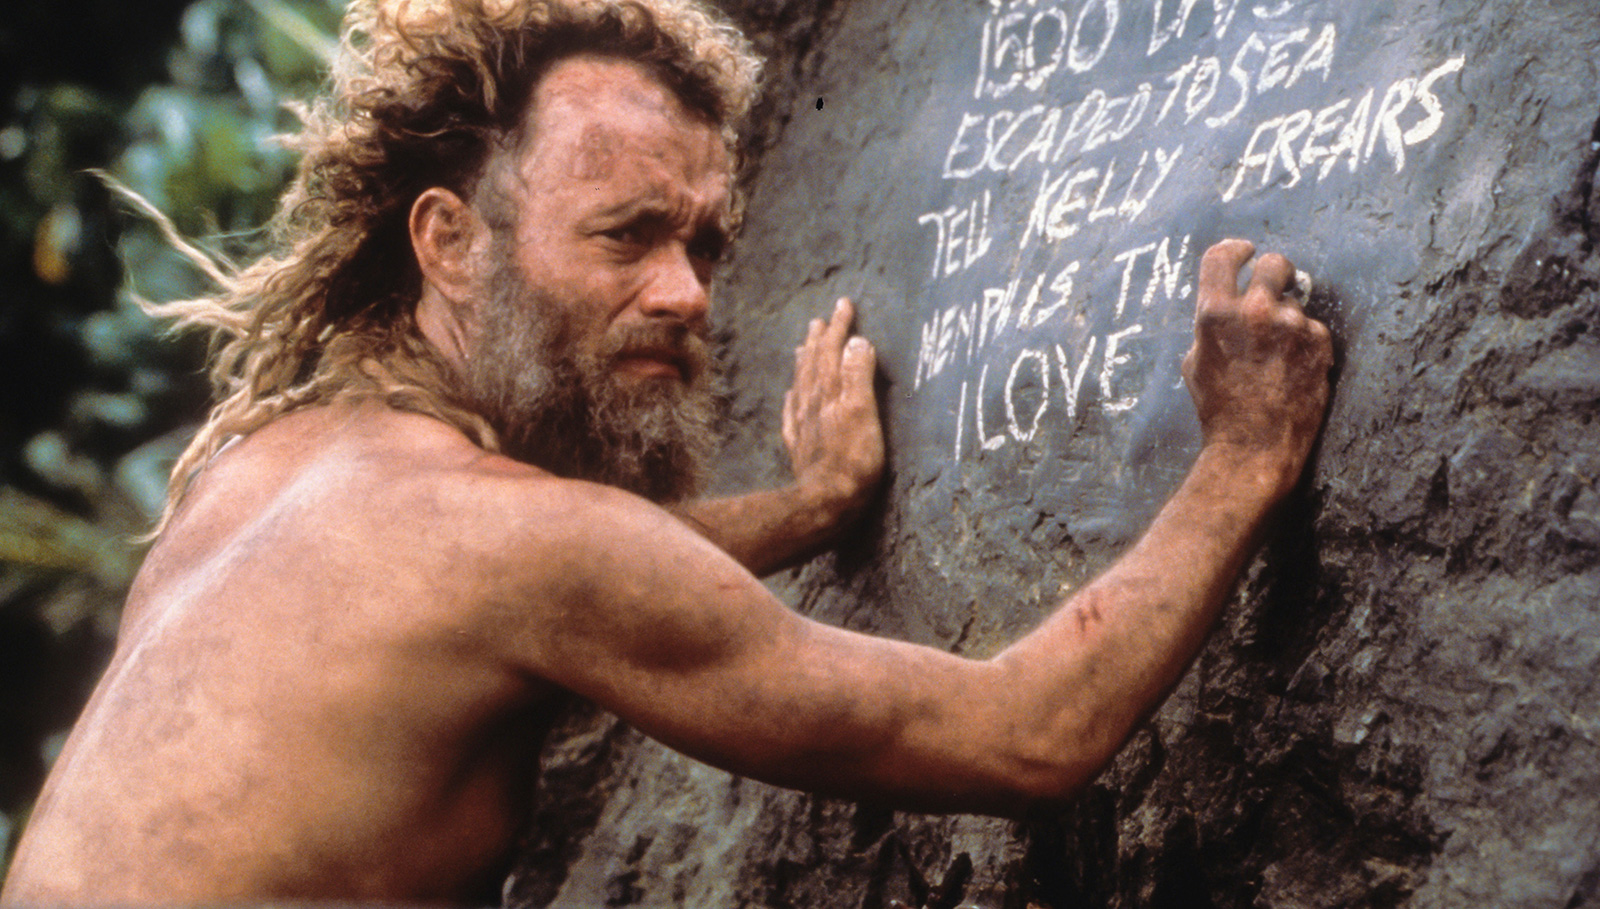 How long was tom hanks cast away